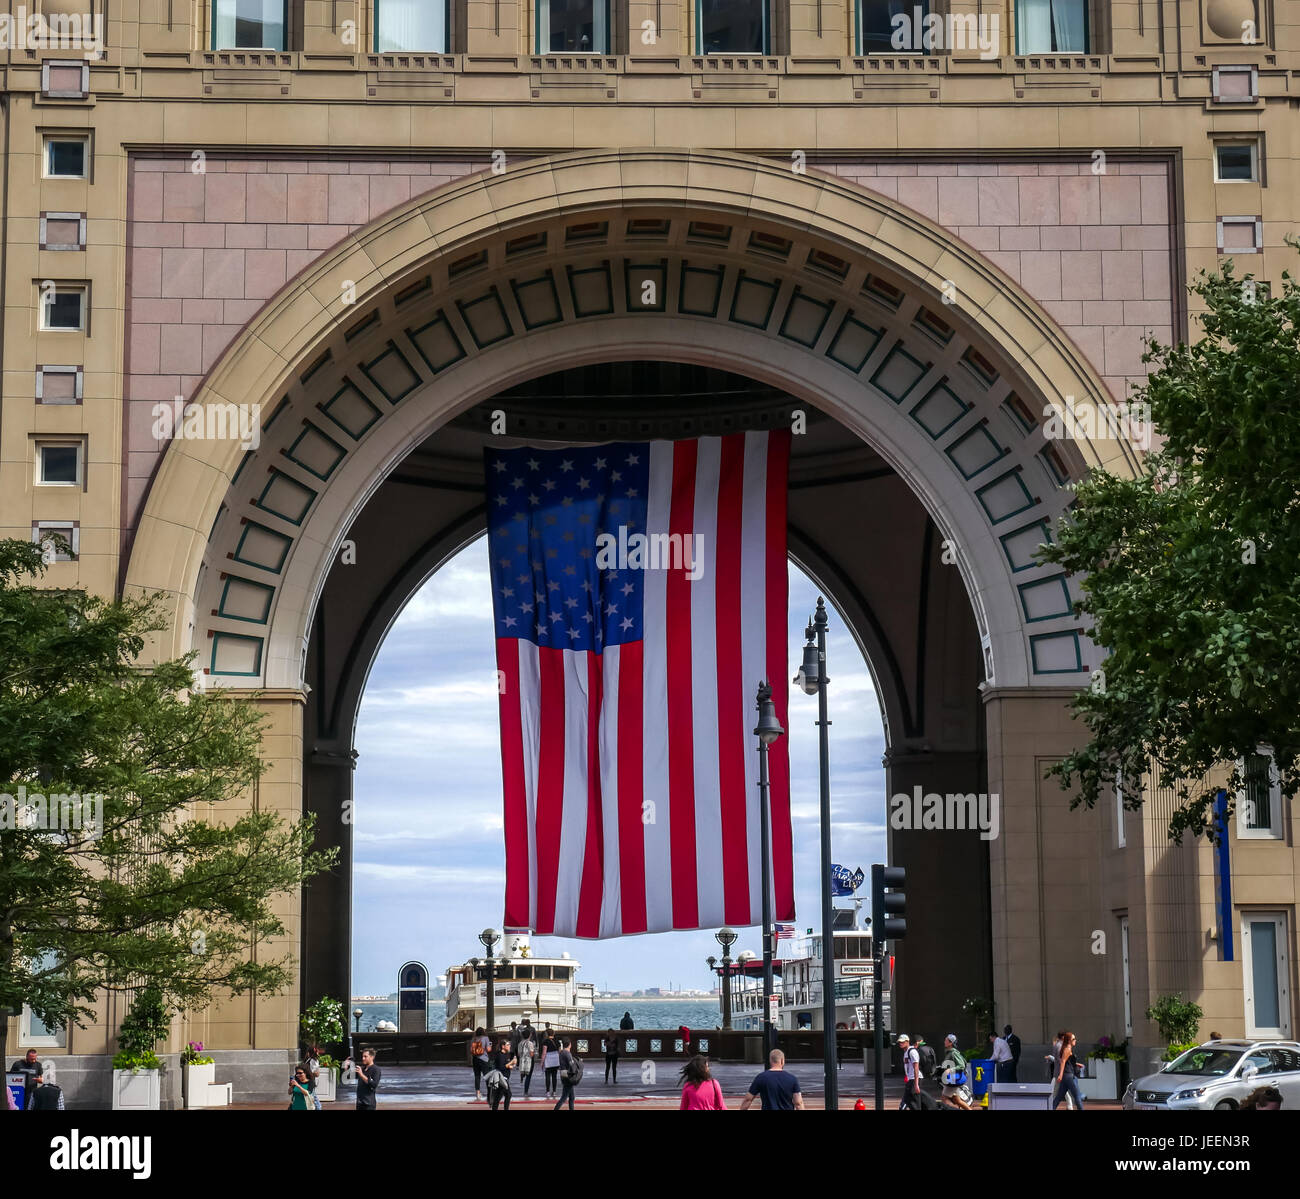 Large Usa Flag Hanging In Arch Boston Harbor Hotel Rowes Wharf Stock Photo Alamy